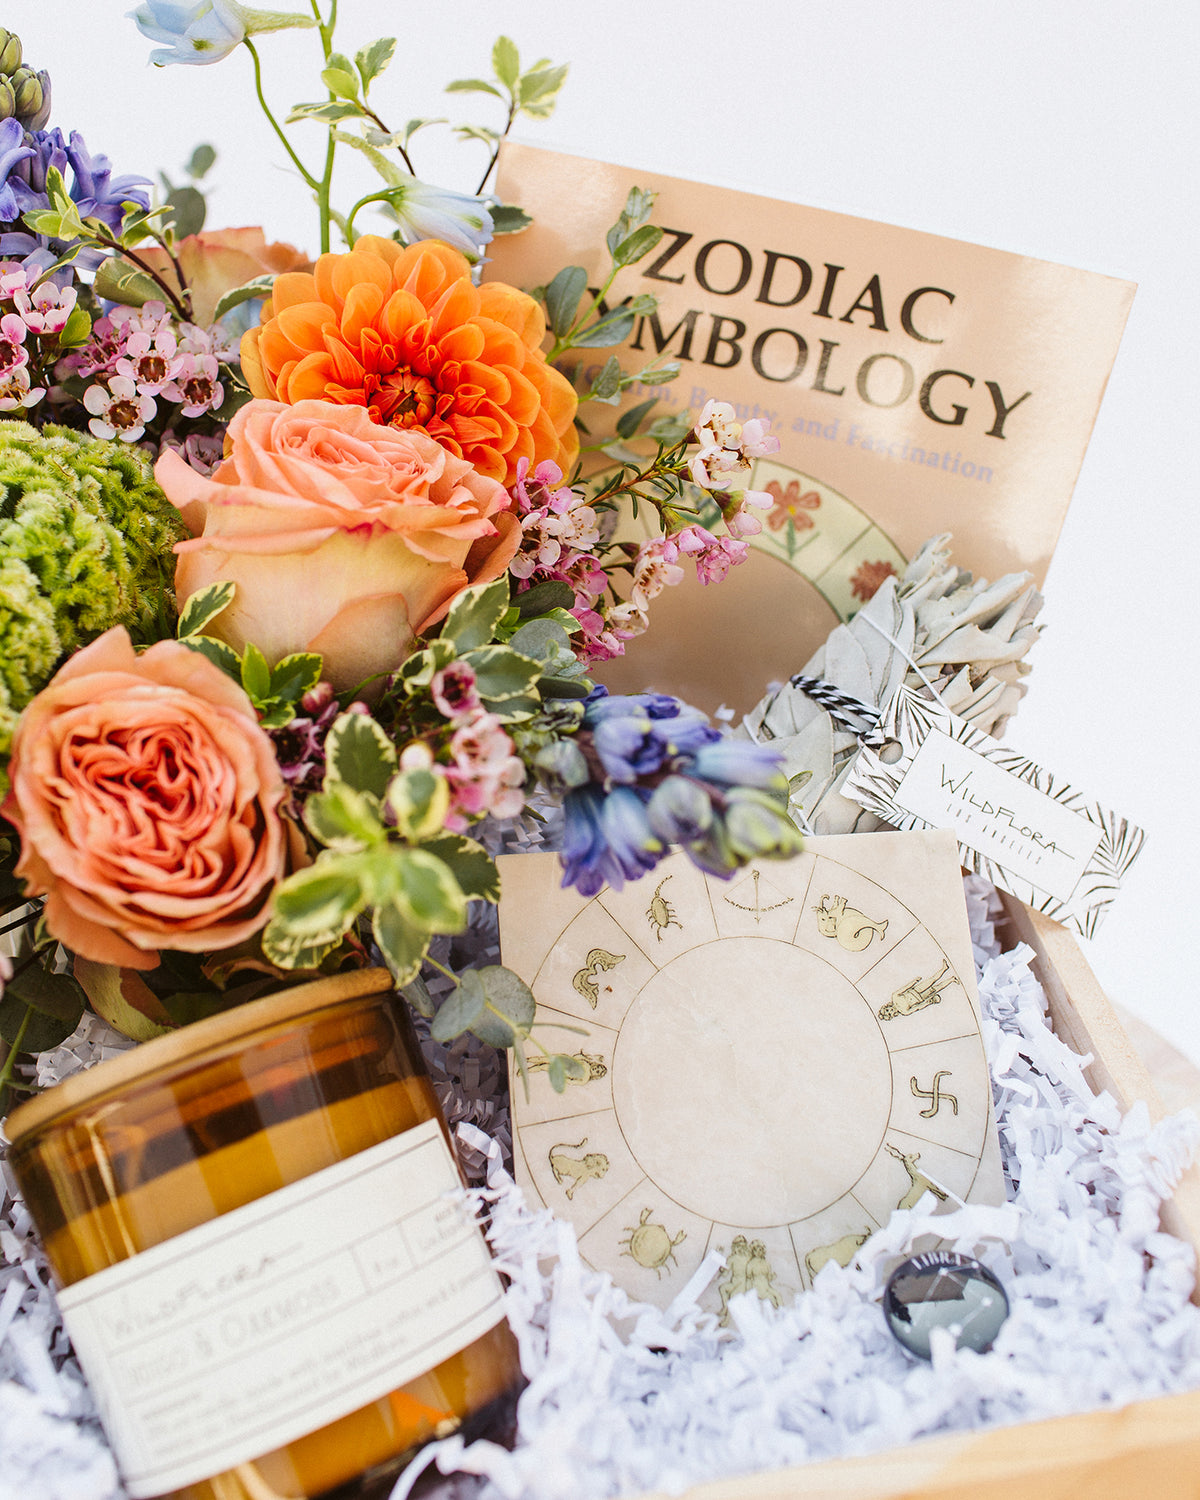 Mind the Stars Zodiac Gift Box